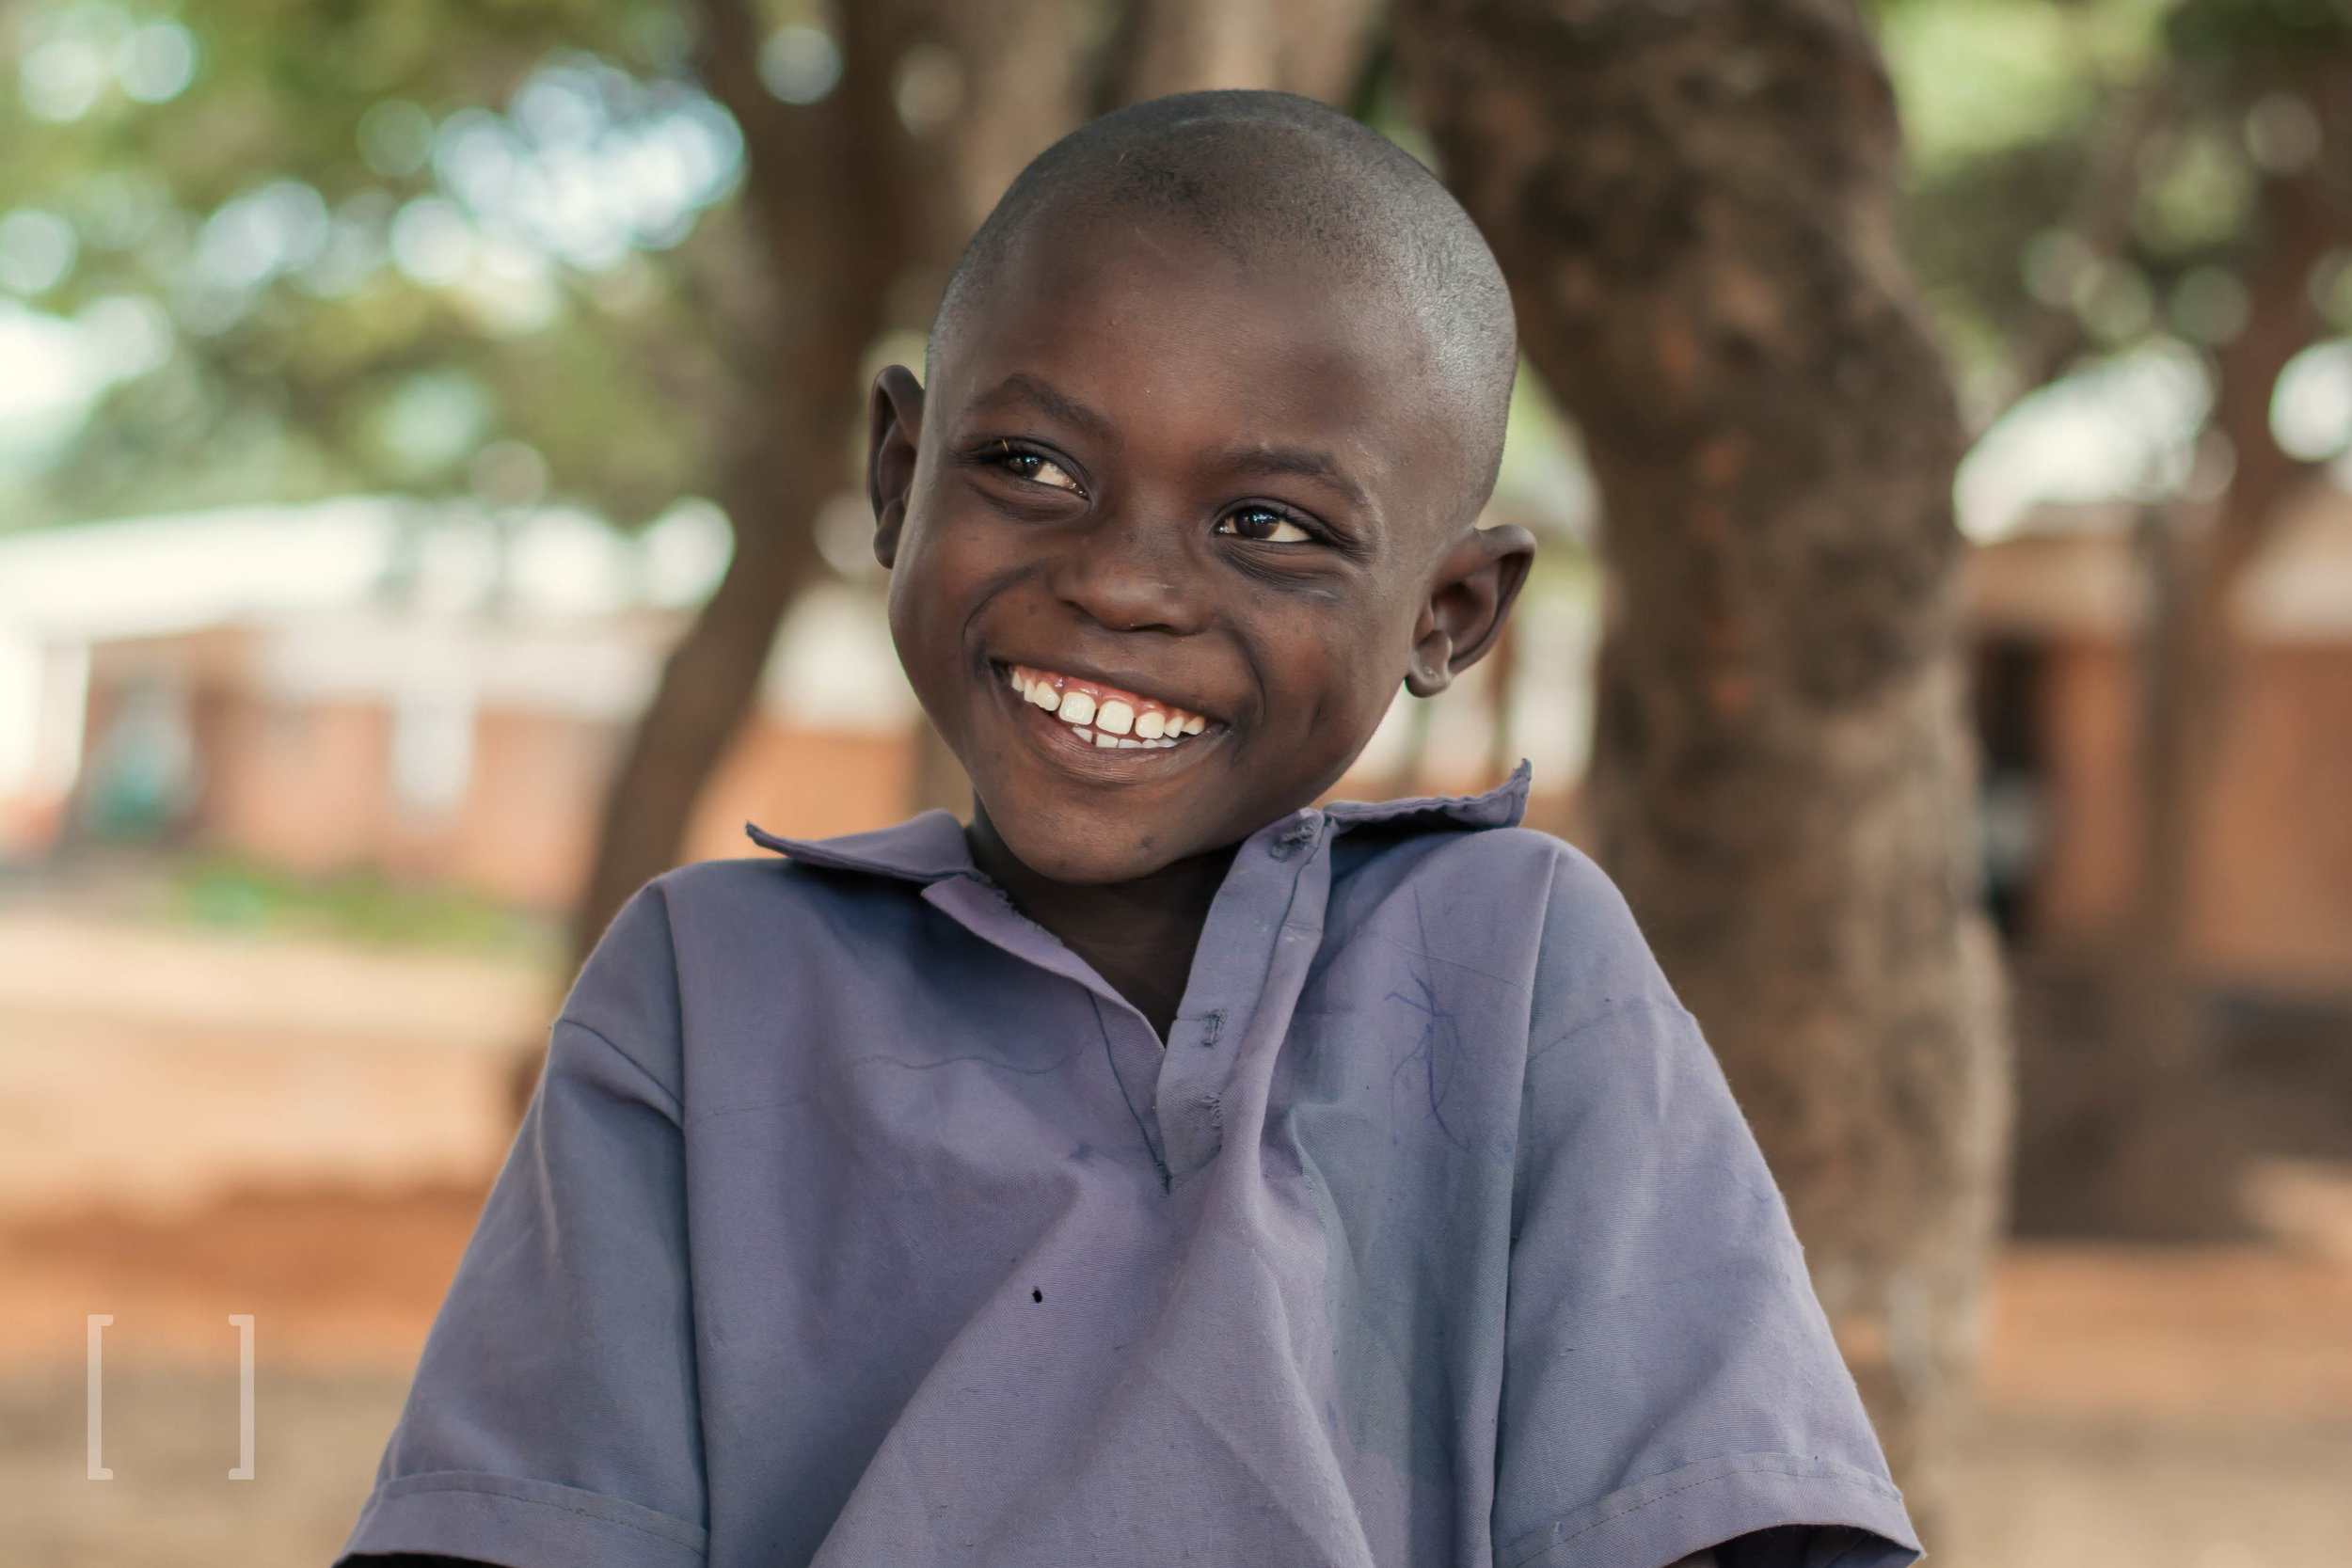 Lackson - Lackson came to the orphanage at 6 years old following the death of his father in a tragic car accident. Despite his circumstances, he is thriving. Lackson loves playing with friends and singing songs. Show him some love and become his sponsor!